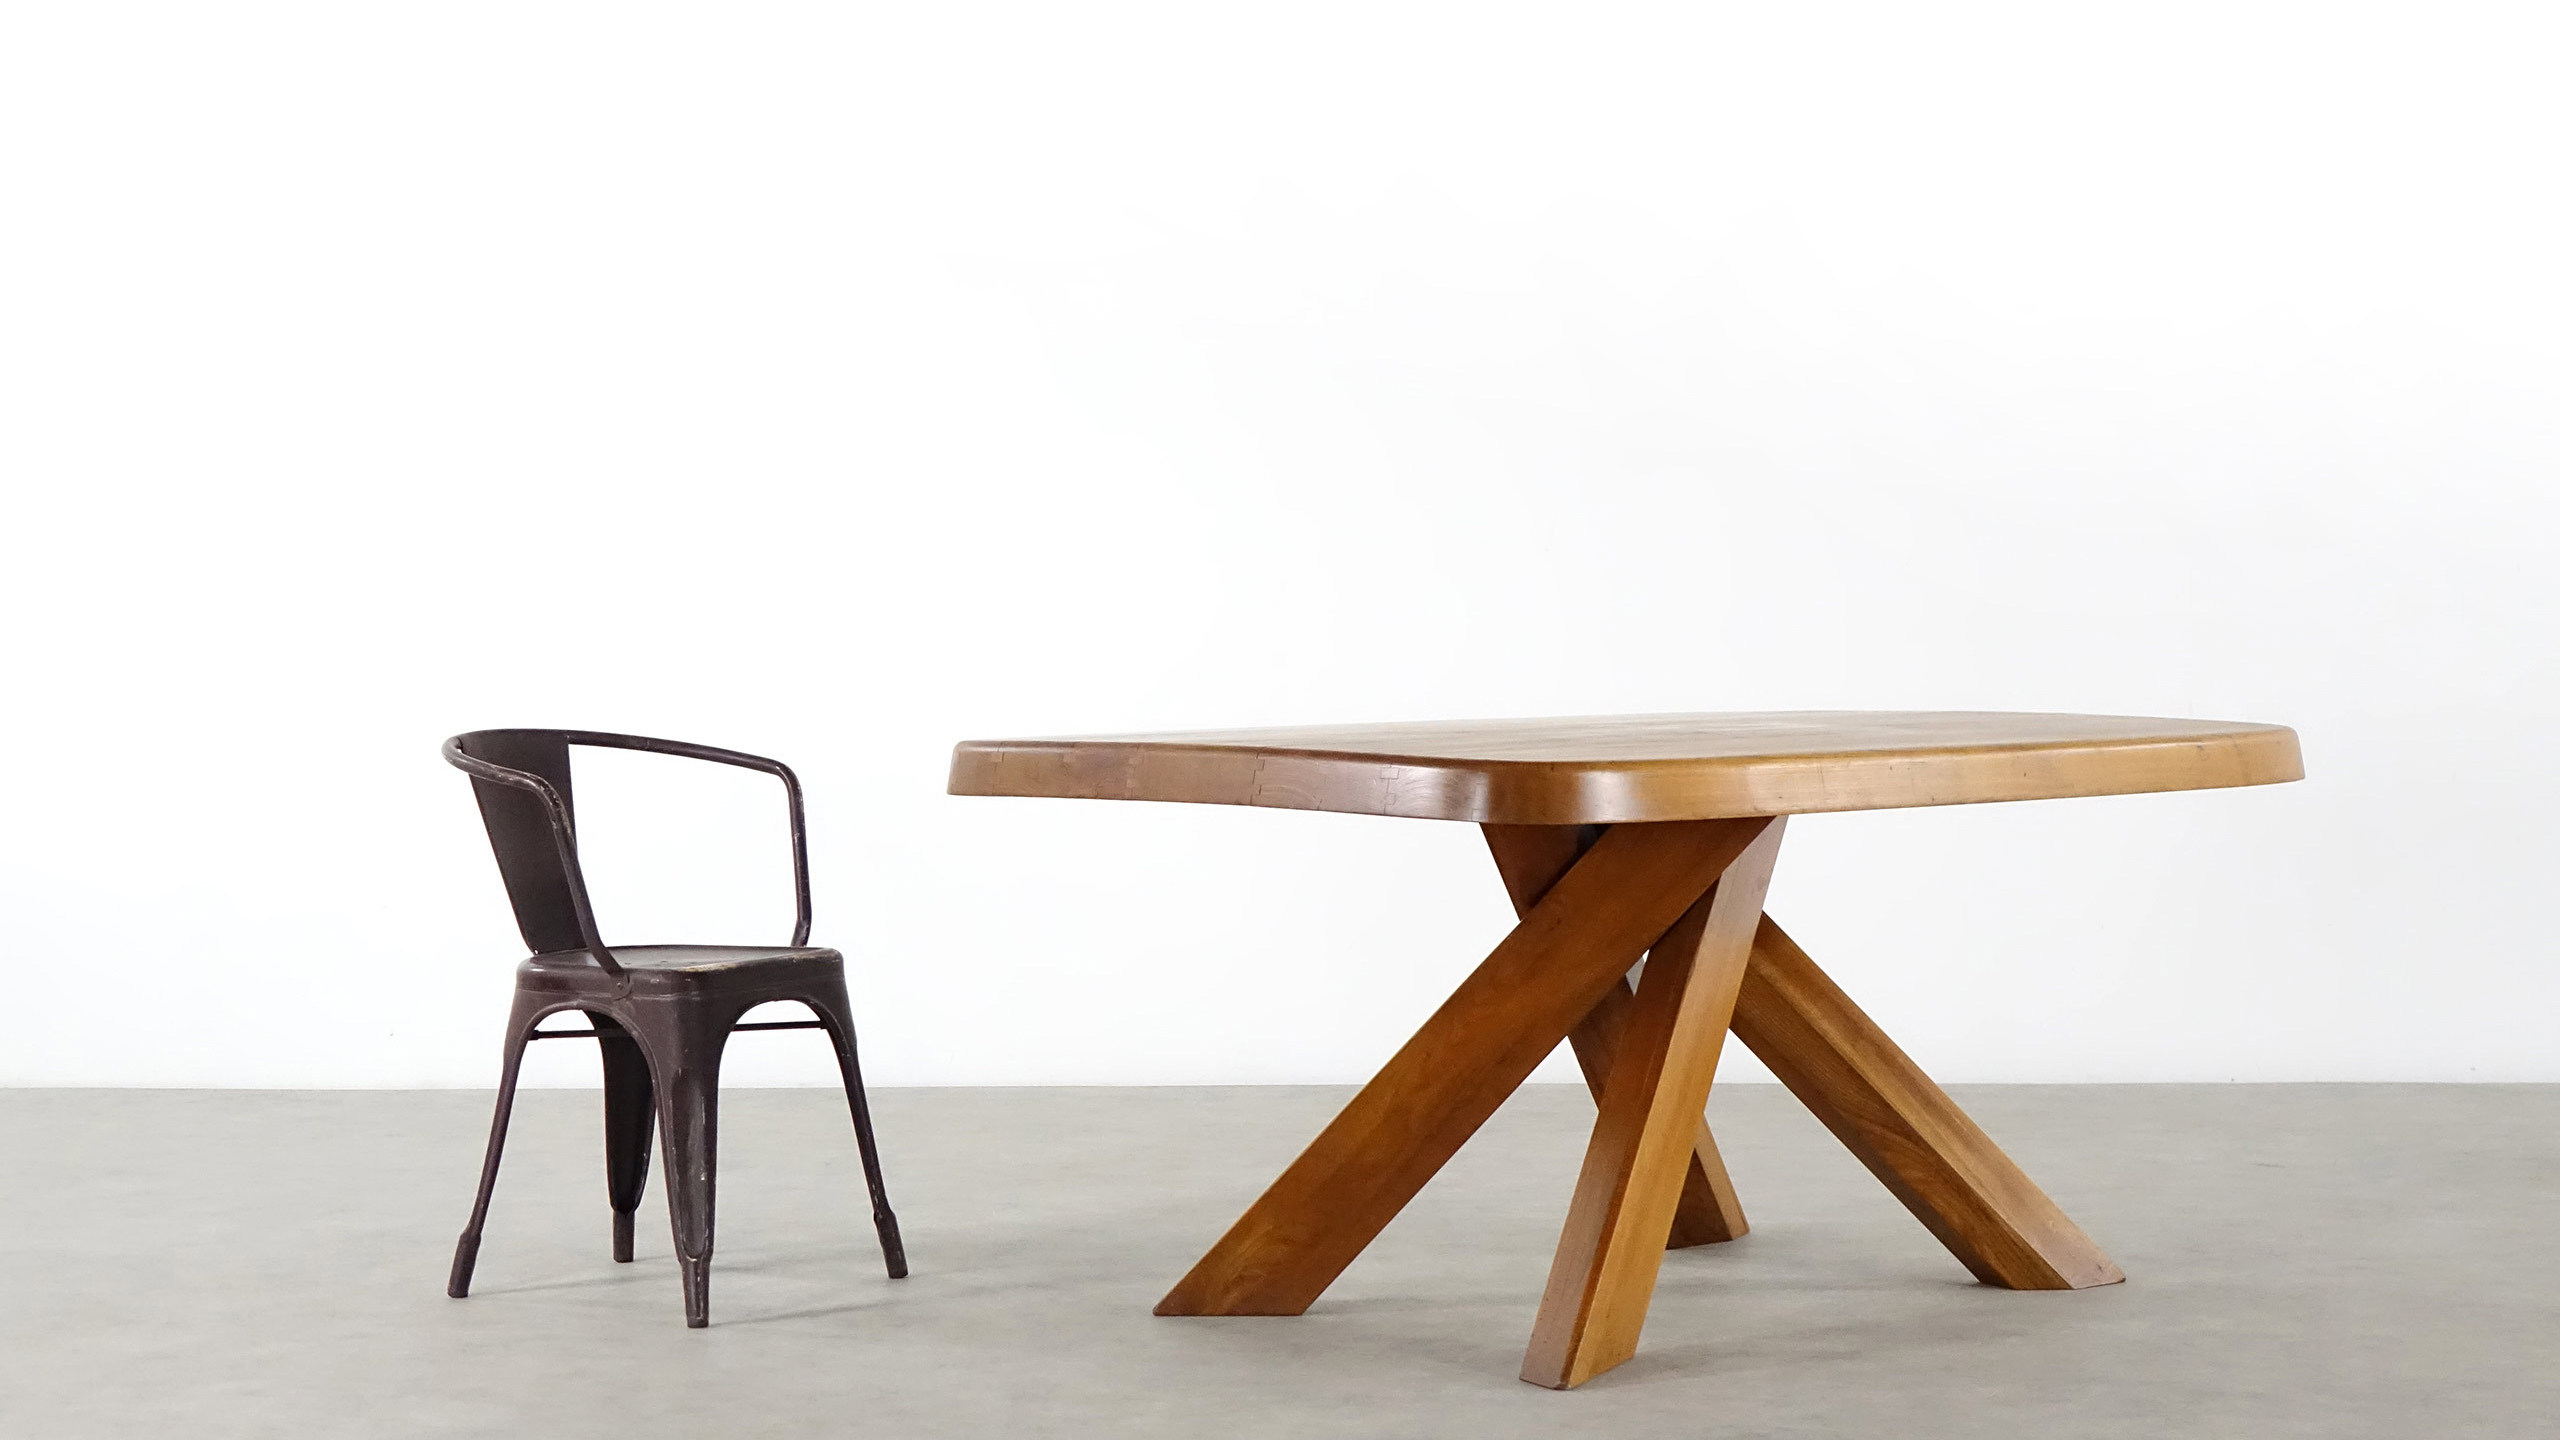 pierre chapo table by sfax france 1960. Black Bedroom Furniture Sets. Home Design Ideas